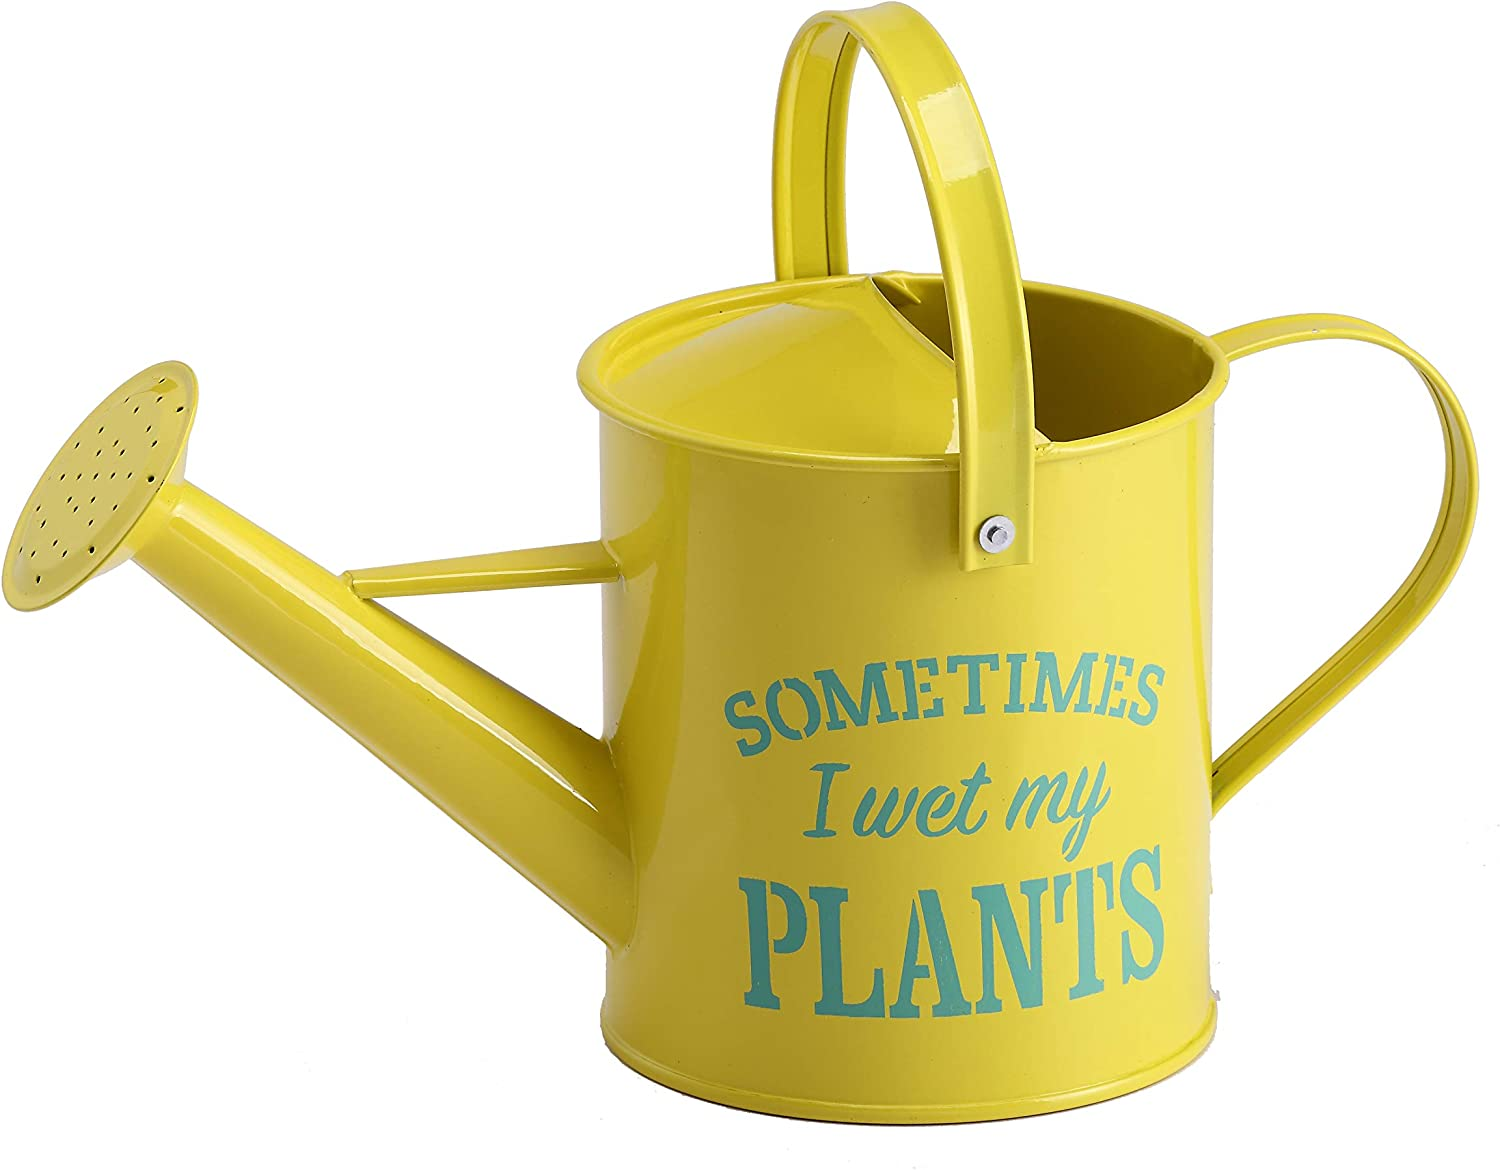 Laila and Lainey Small Indoor Watering Can - Housewarming Gardening Gift for Women - Decor: Wet My Plants Quote - 1.6 L - Great for Your Best Friend - Yellow Galvanized Metal